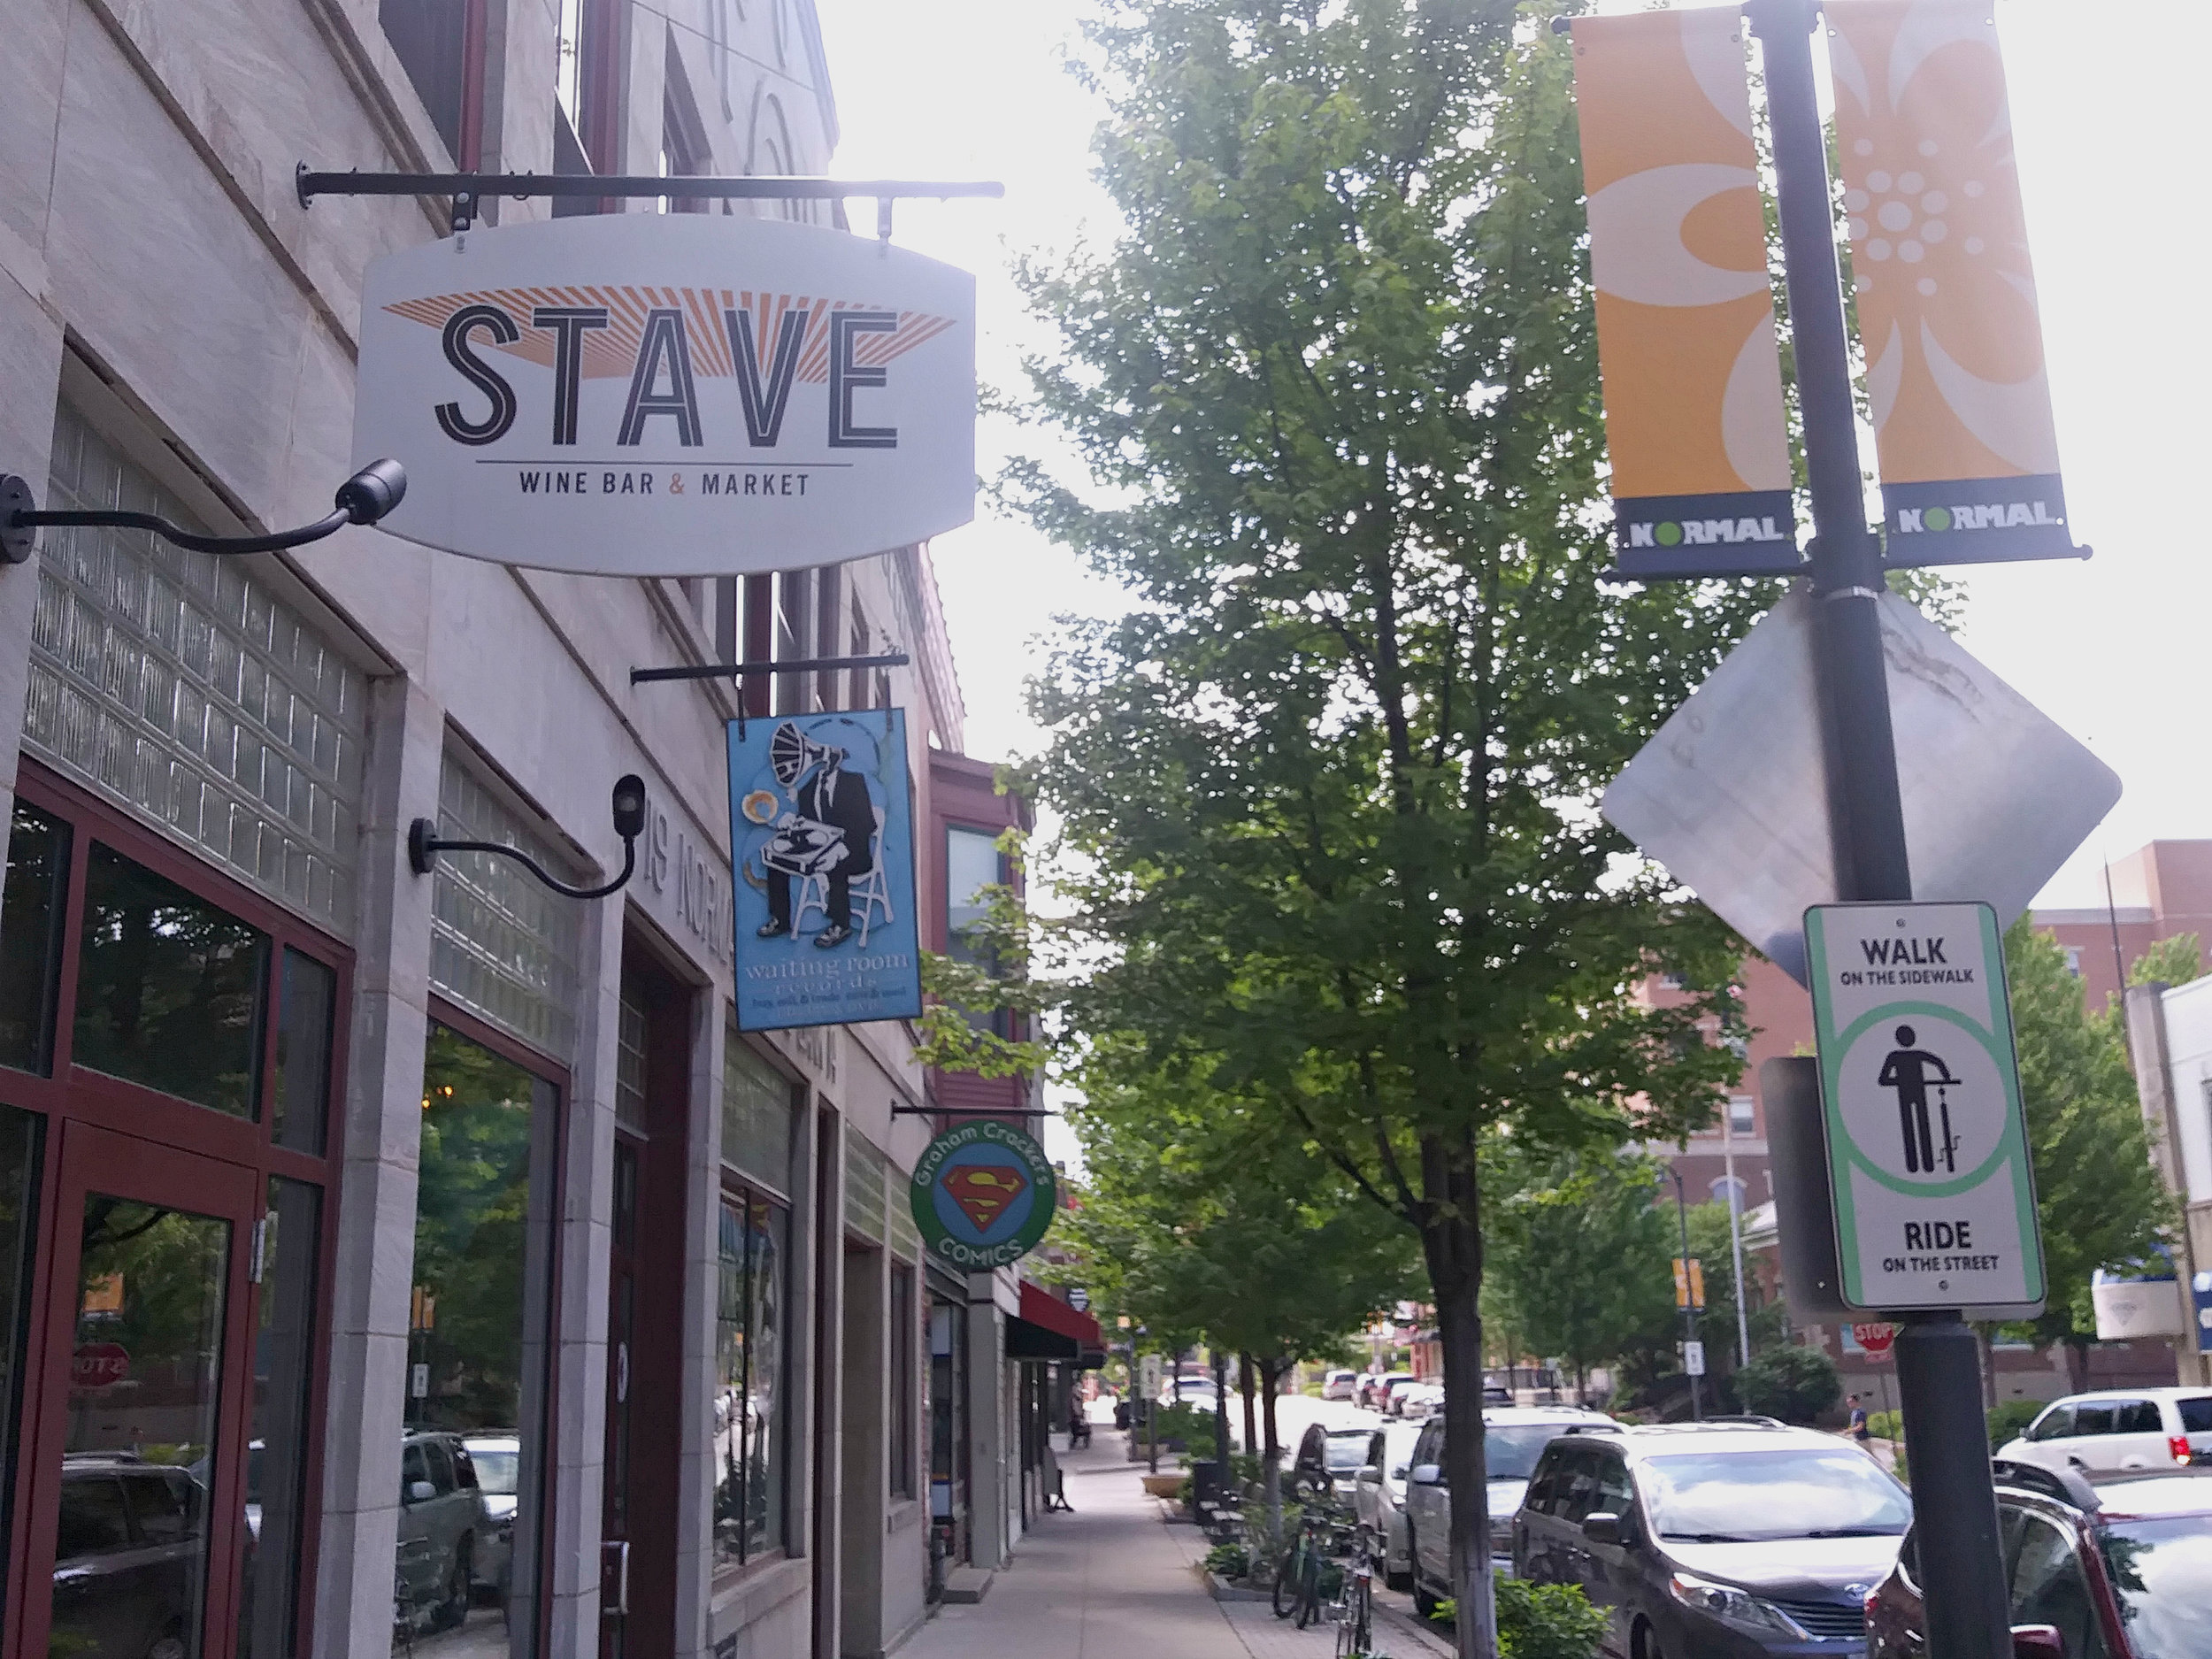 Stave Wine Bar and Market at 111 W. North St. in Normal will be the site of an on-street cafe seating pilot program beginning this summer. (Photo: Breanna Grow/AdaptBN)